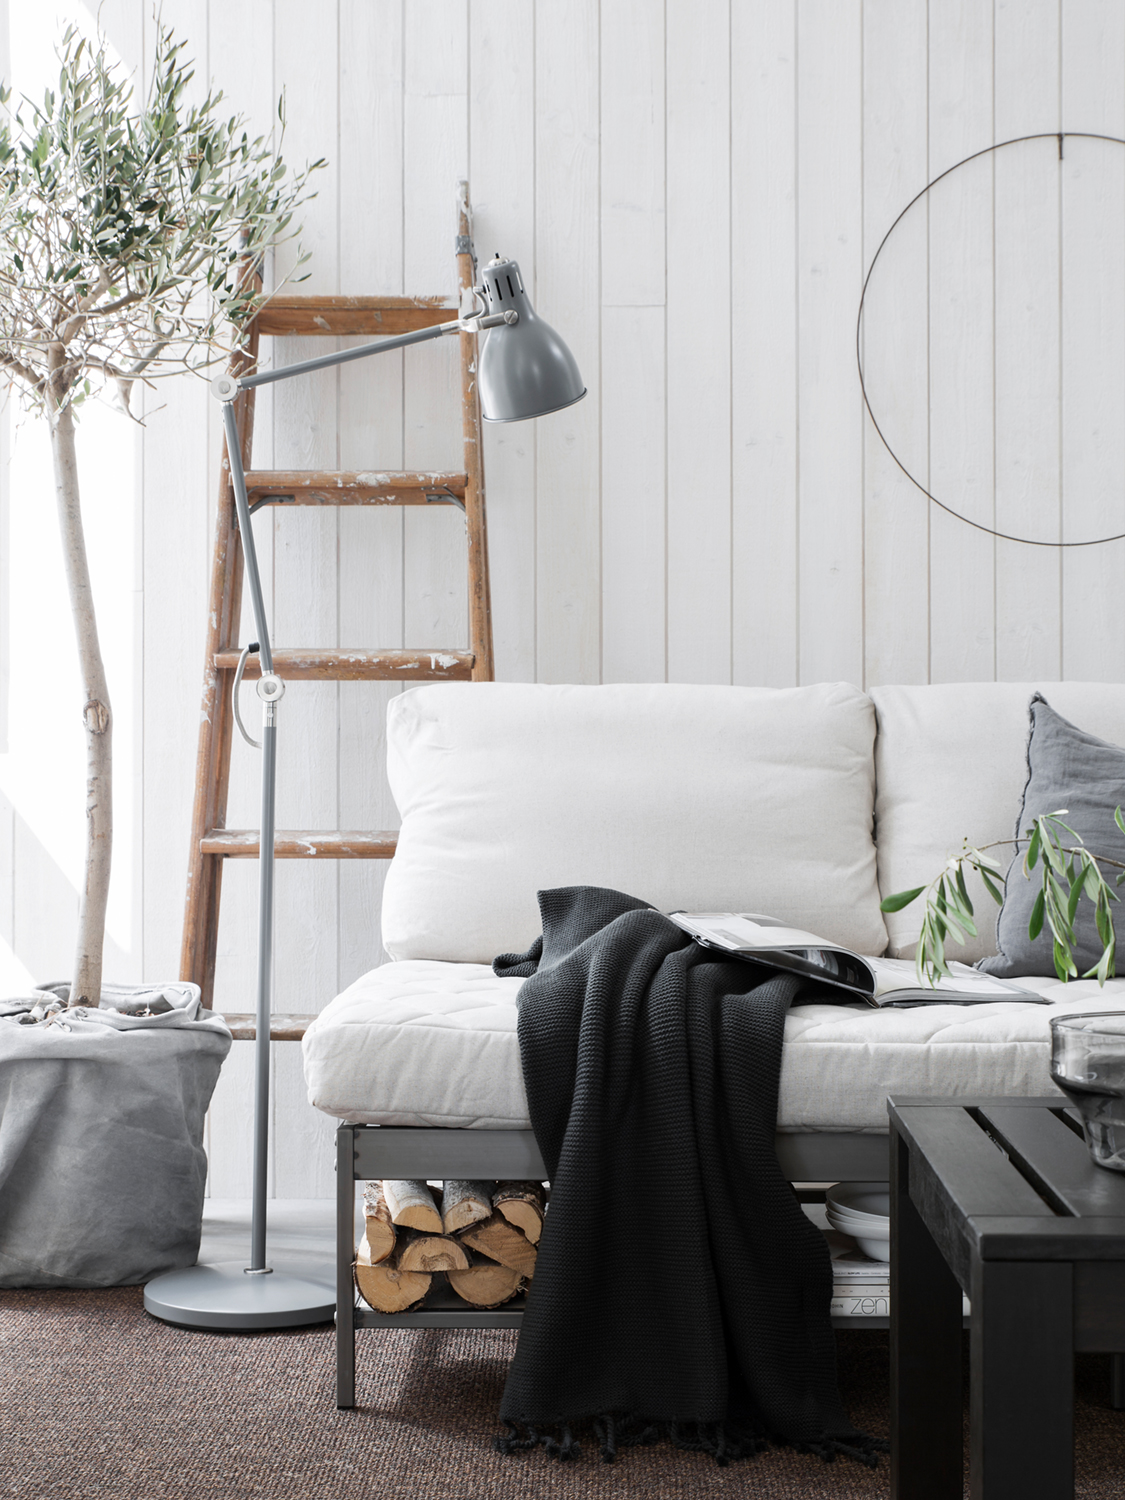 Client: IKEA for project Livet Hemma (Life at Home).Styling by Pella Hedeby